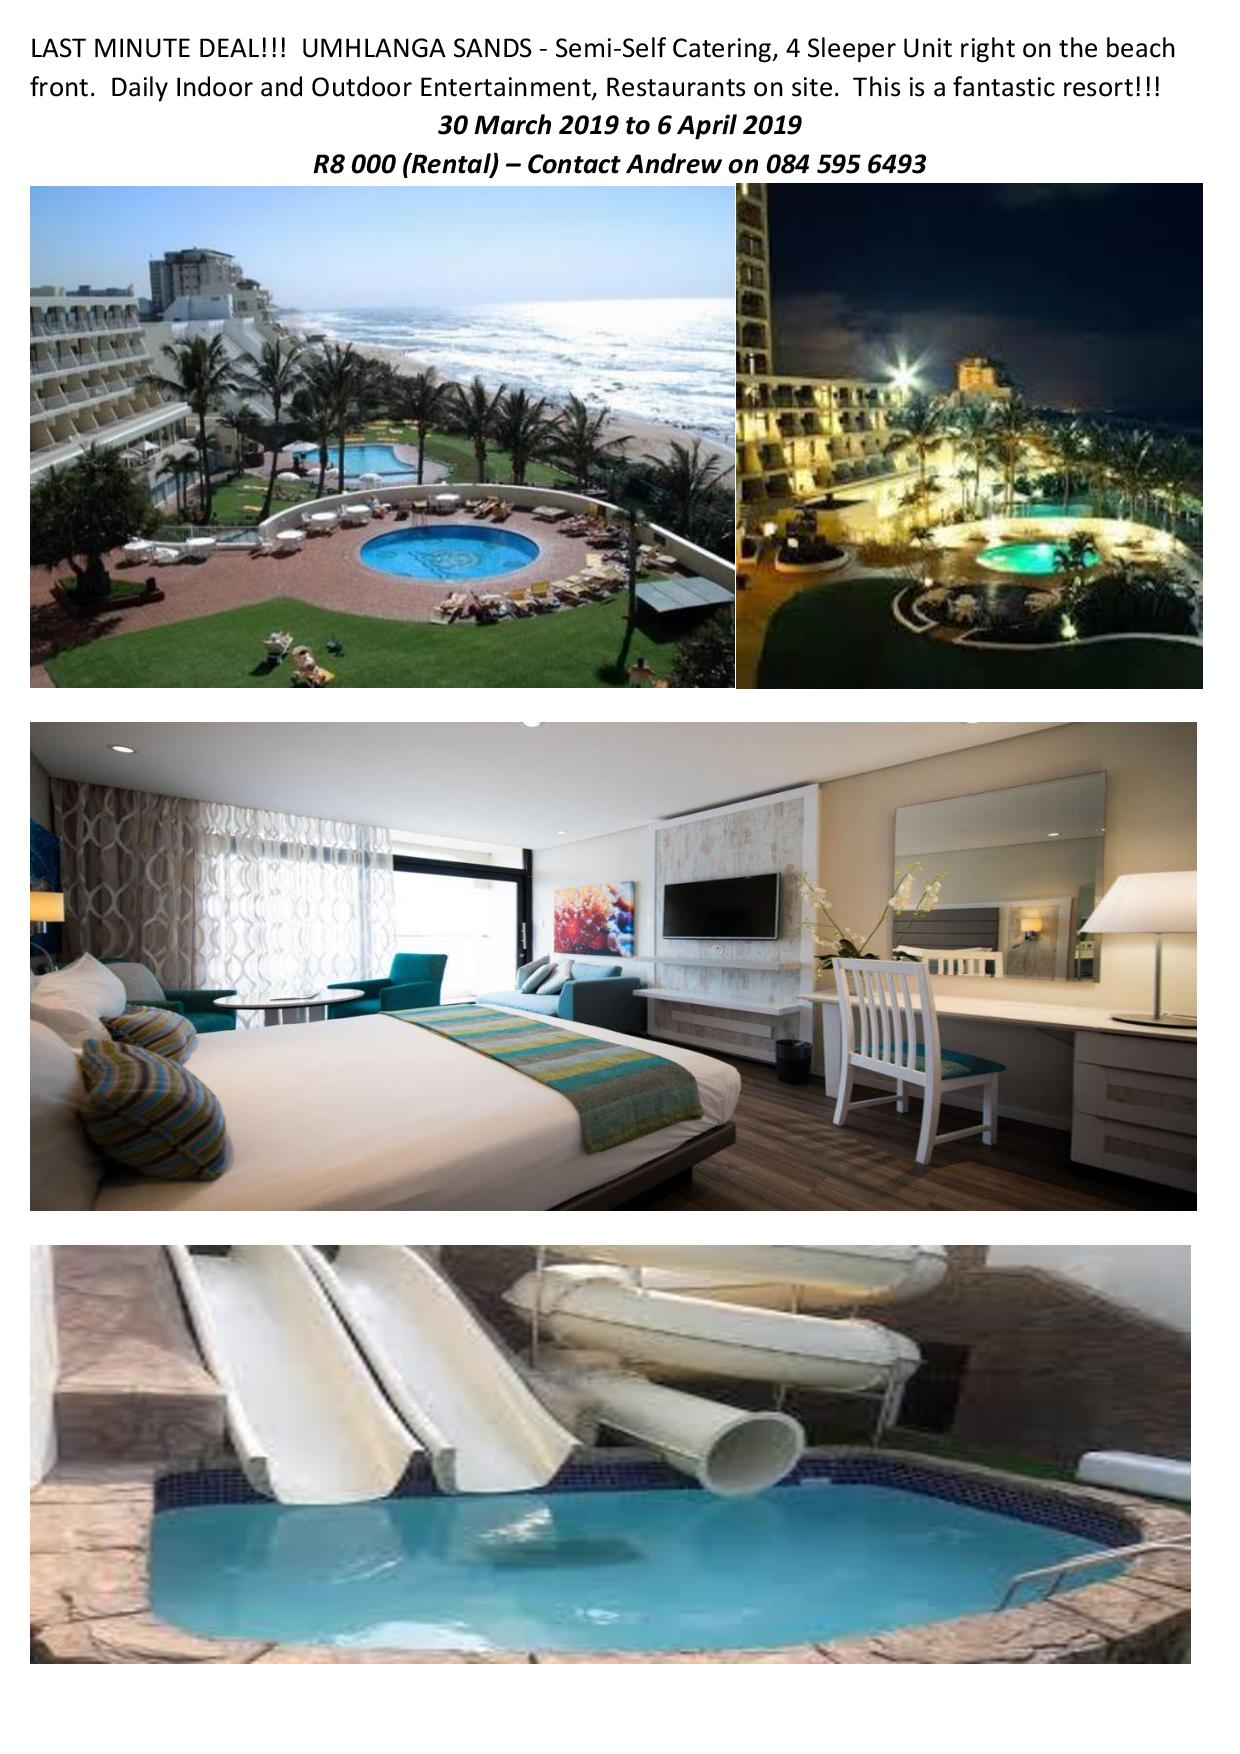 Full week rental at Umhlanga Sands 30 March to  6 April -4 Sleeper right on beachfront